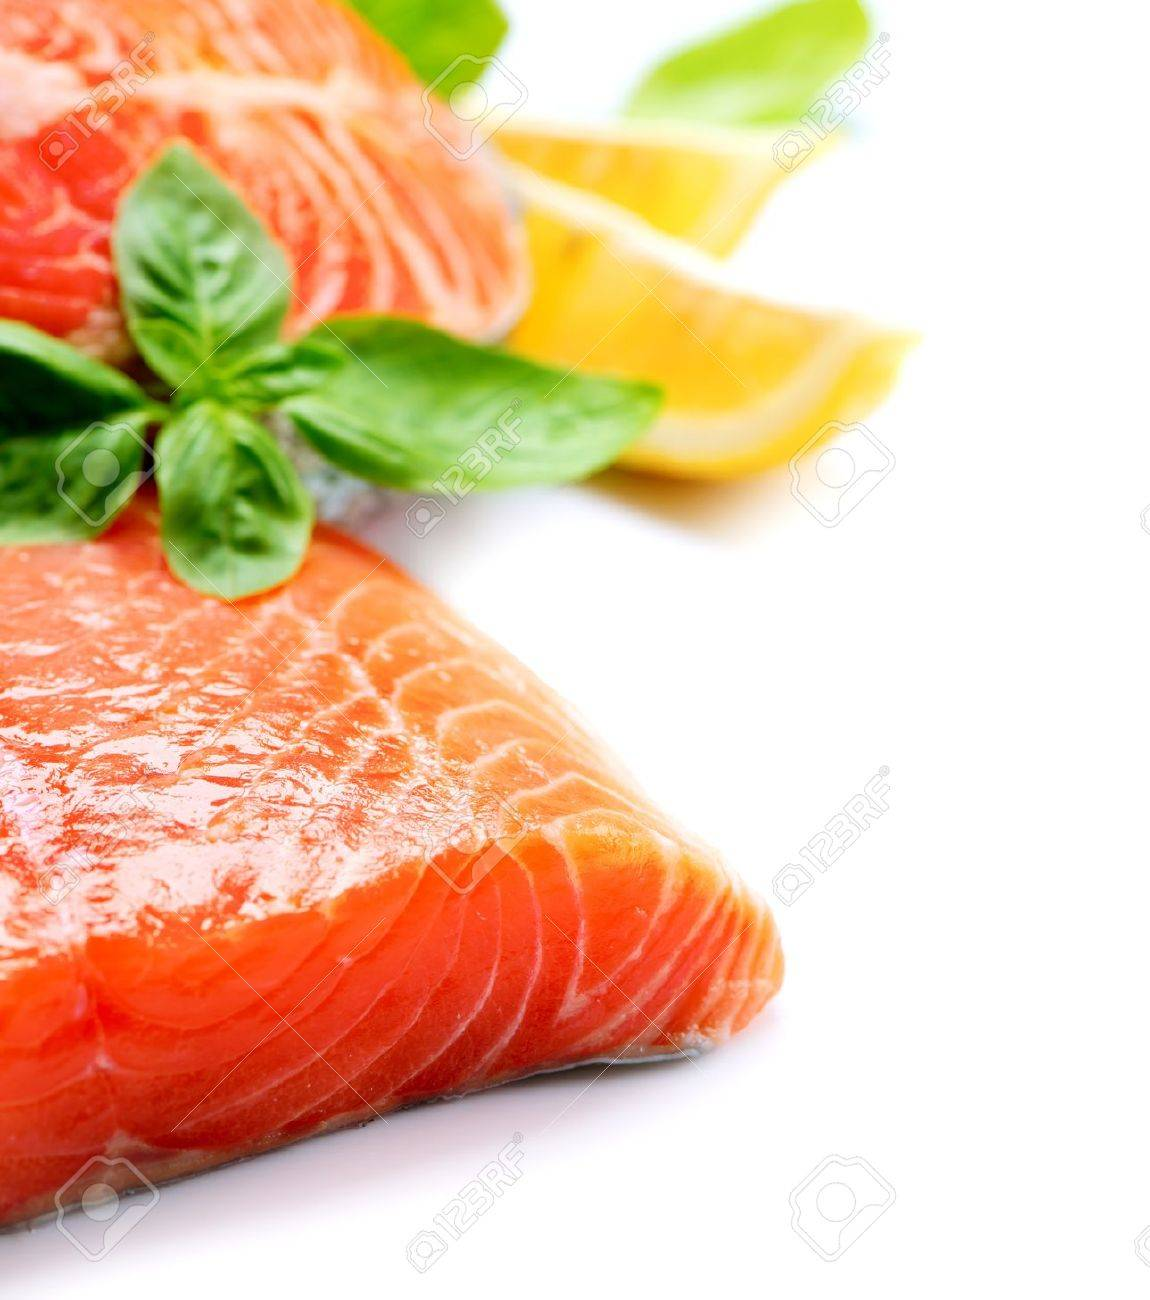 Salmon Raw Fillet  Red Fish isolated on a White Background Stock Photo - 19978713